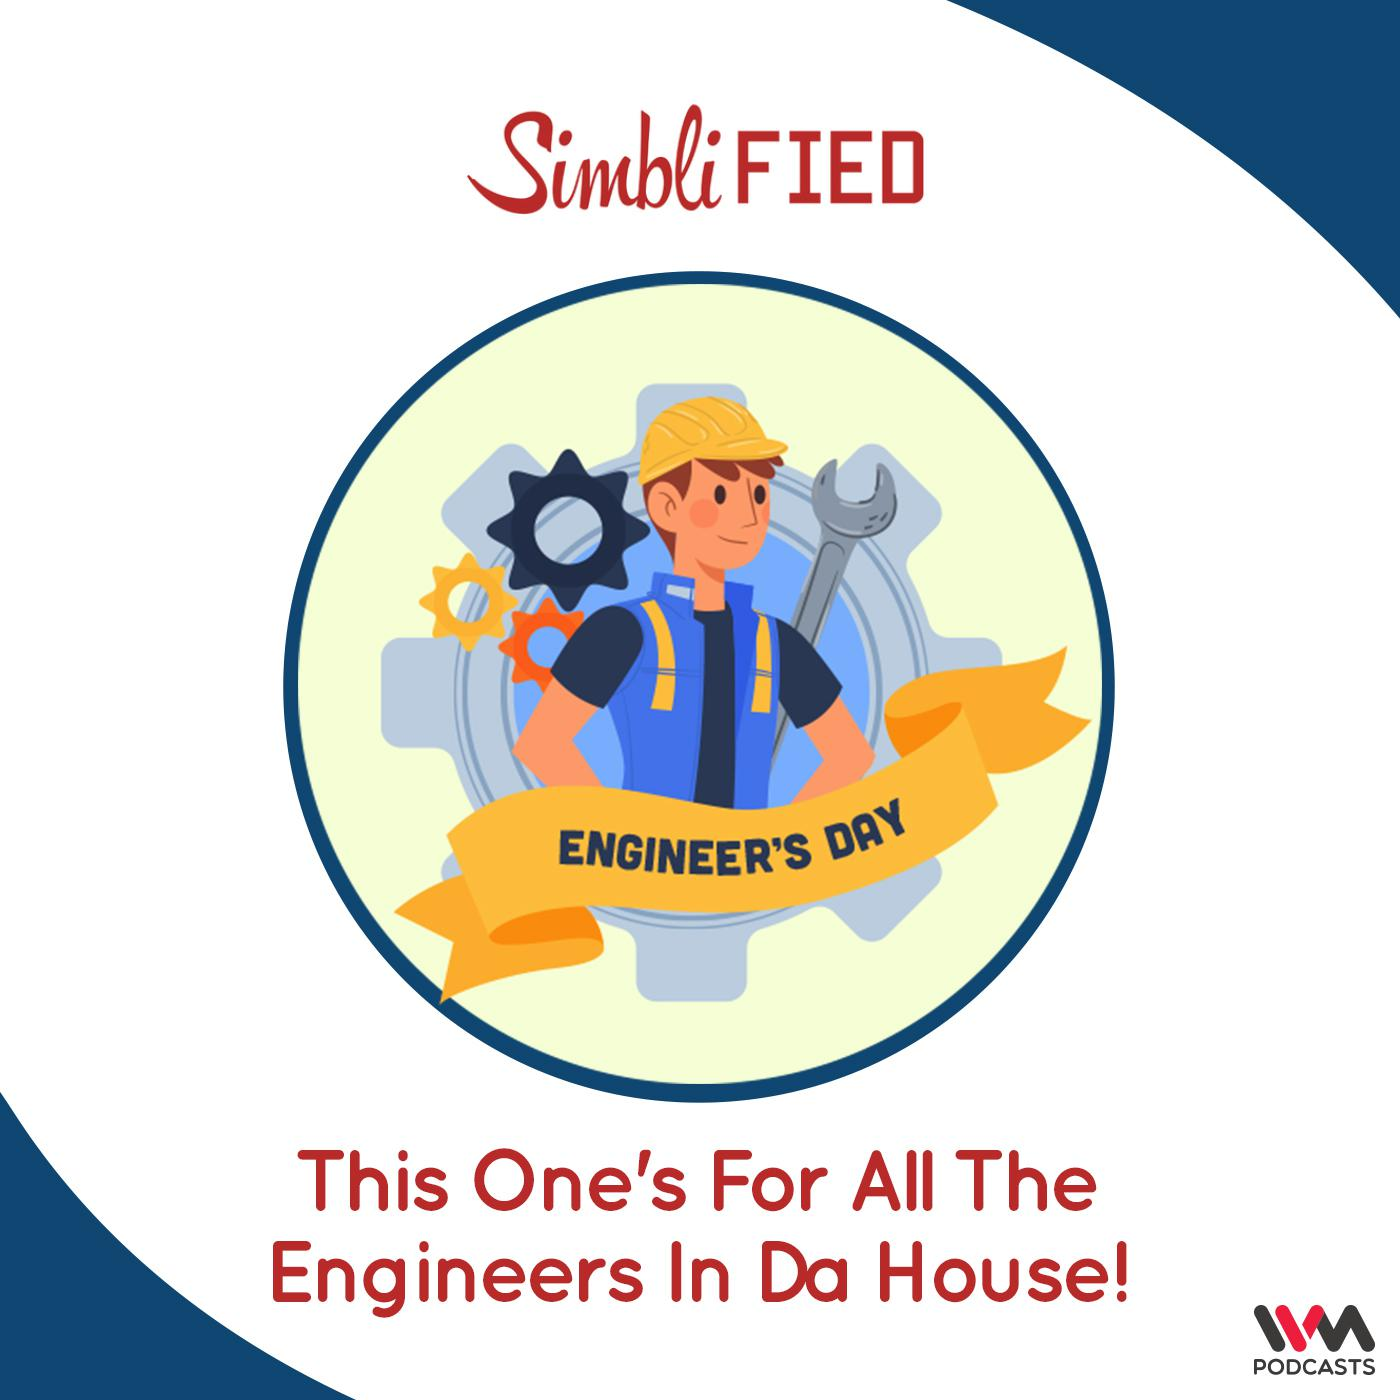 This One's For All The Engineers In Da House!